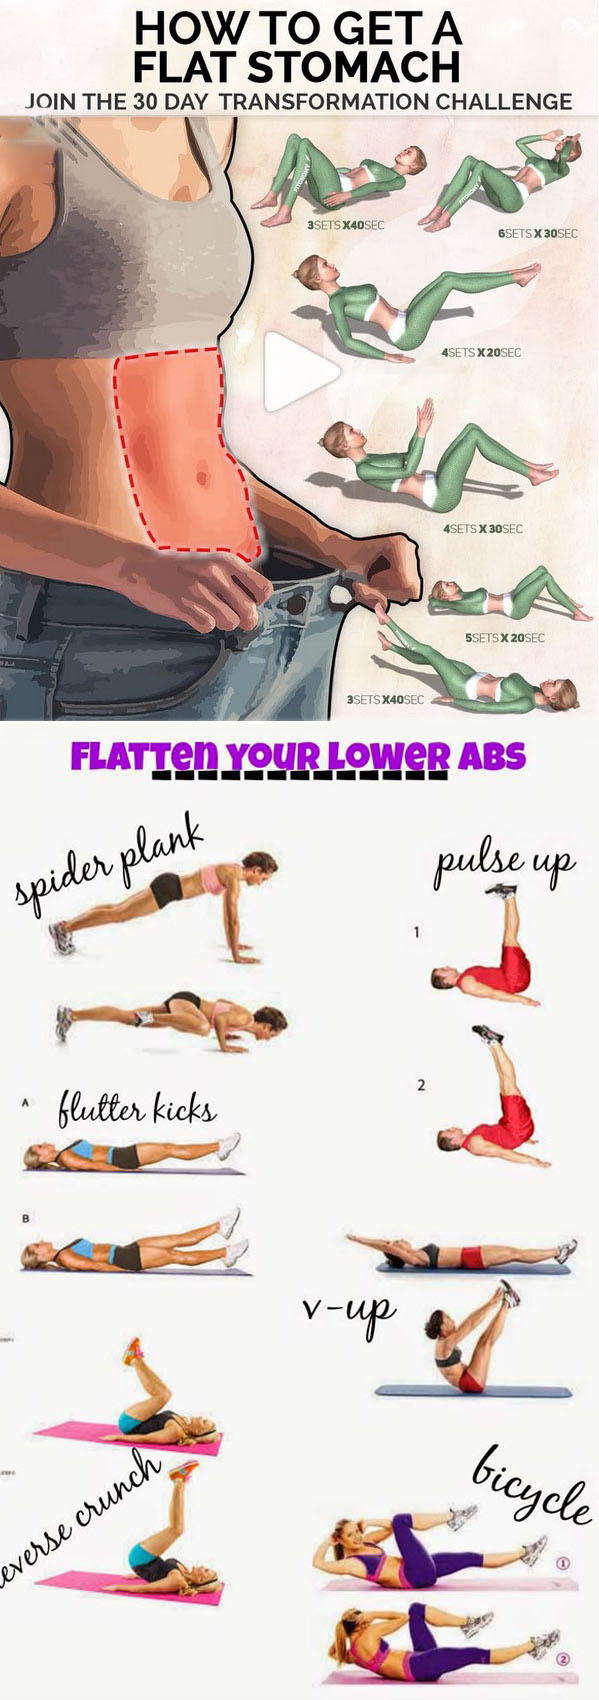 Best Ways to Get a Flat Stomach